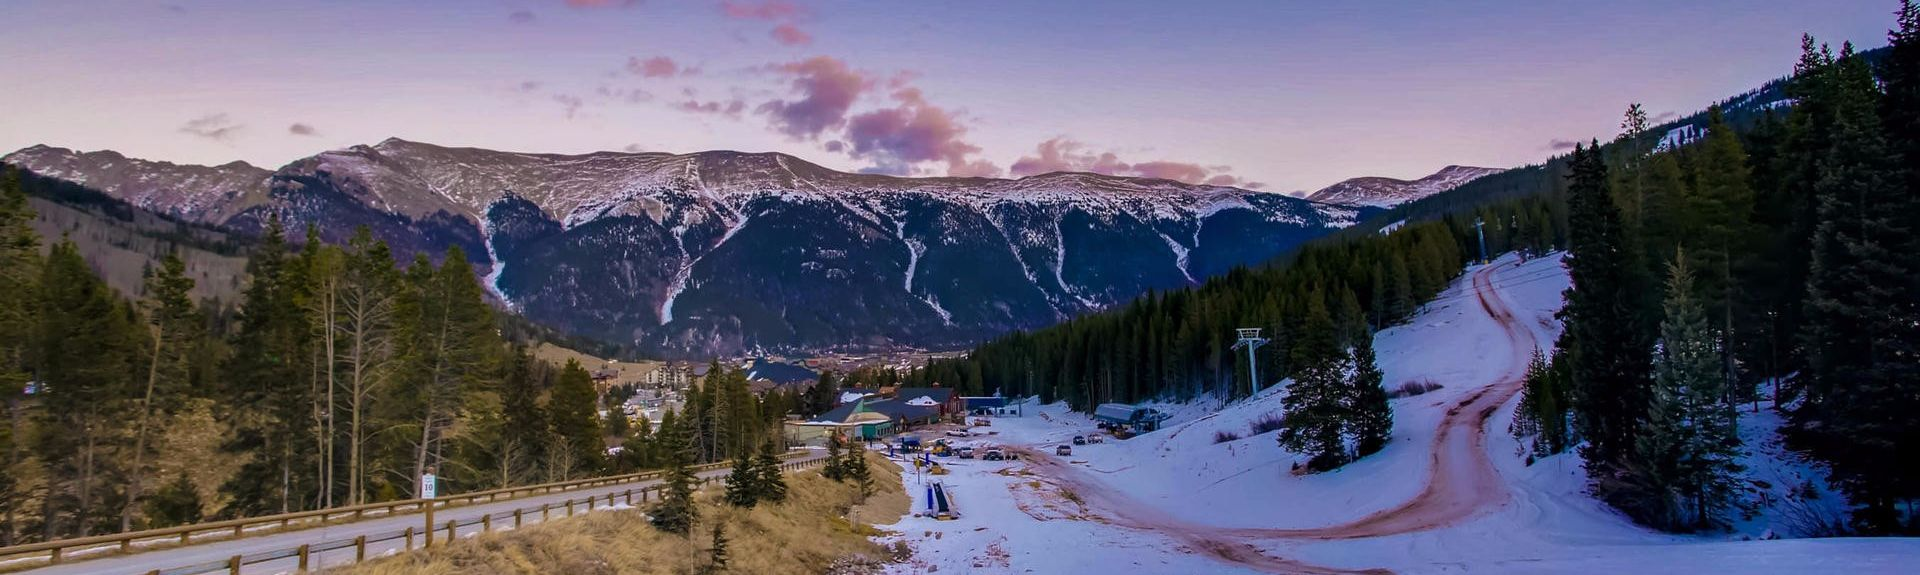 Lewis Ranch (Copper Mountain, Colorado, Yhdysvallat)